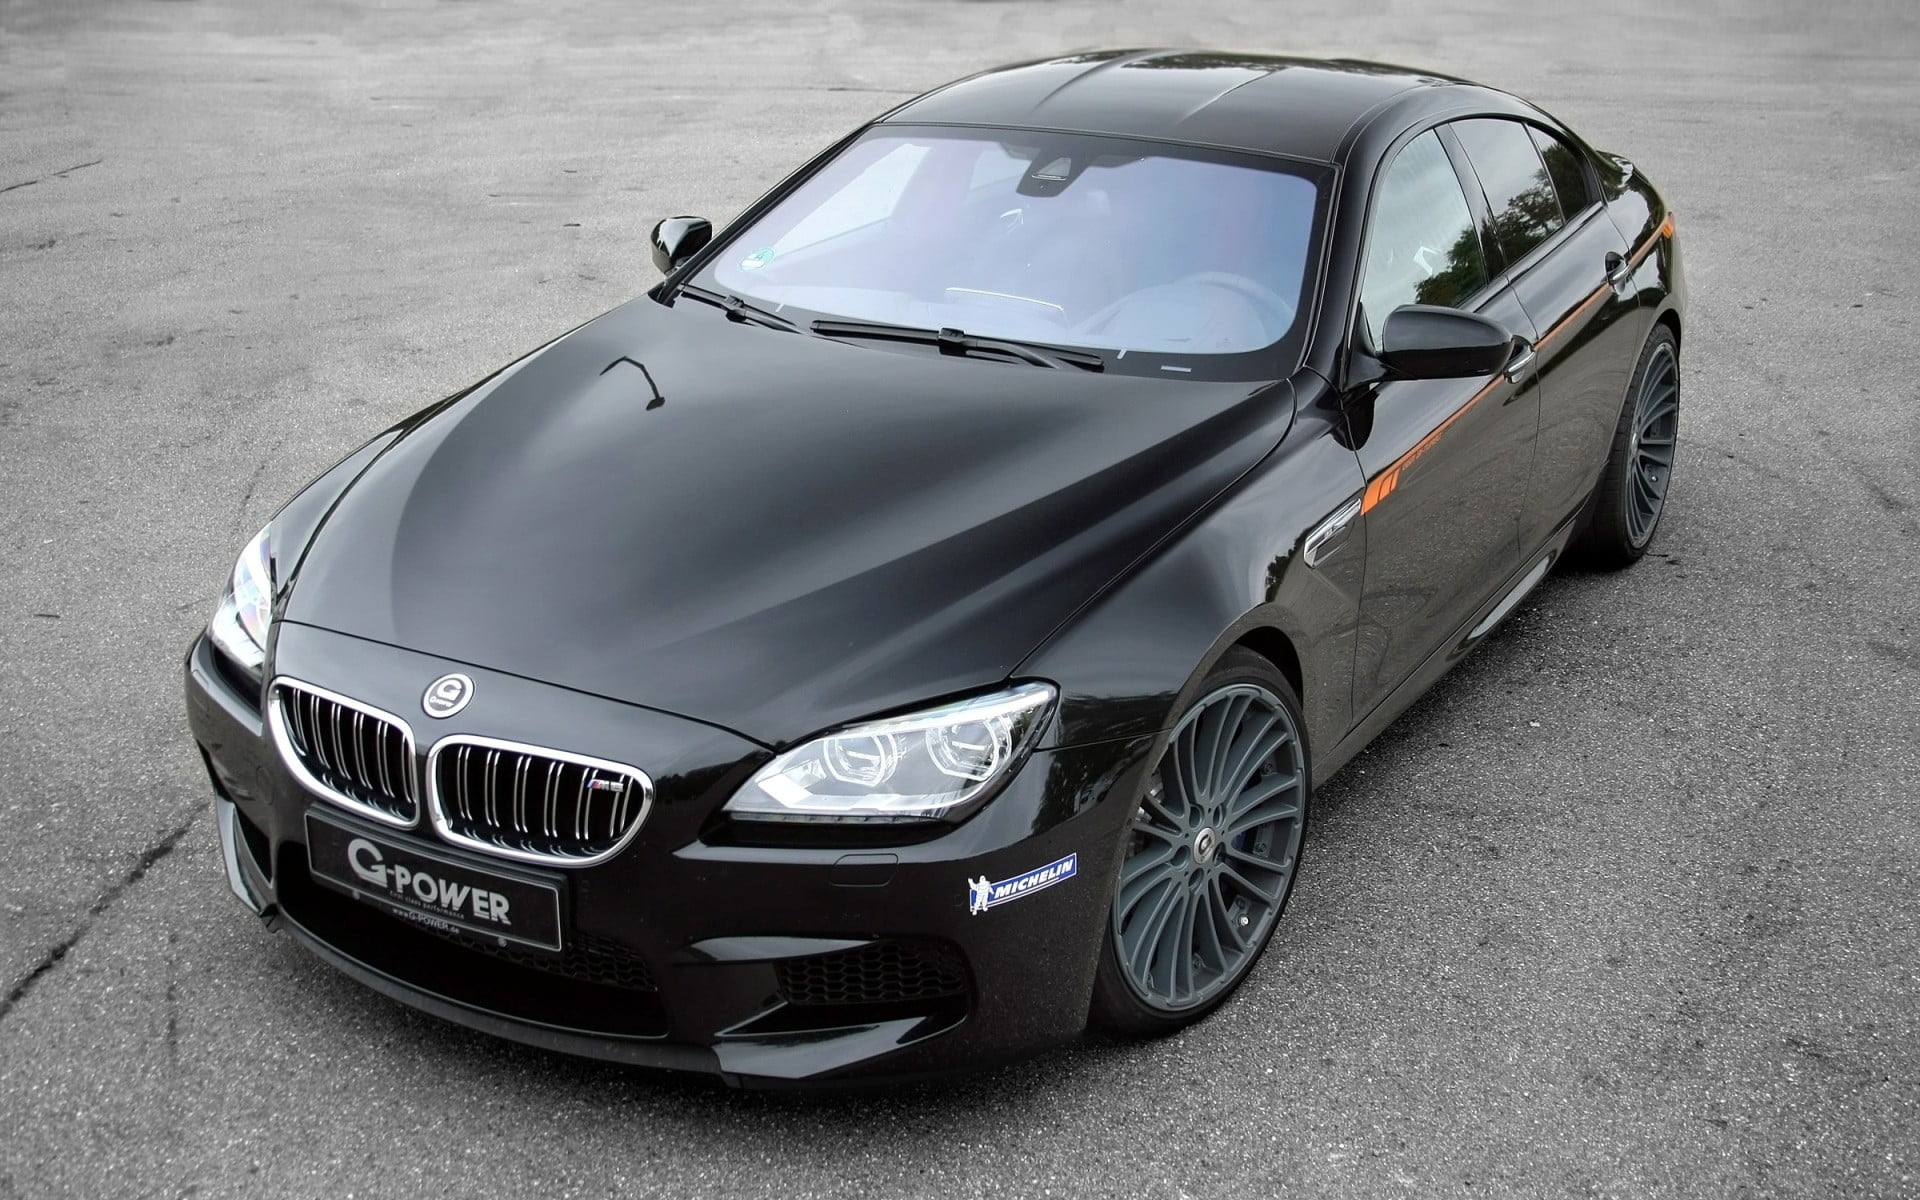 Bmw M6 Coupe 2011 1920x1200 Wallpaper Teahub Io